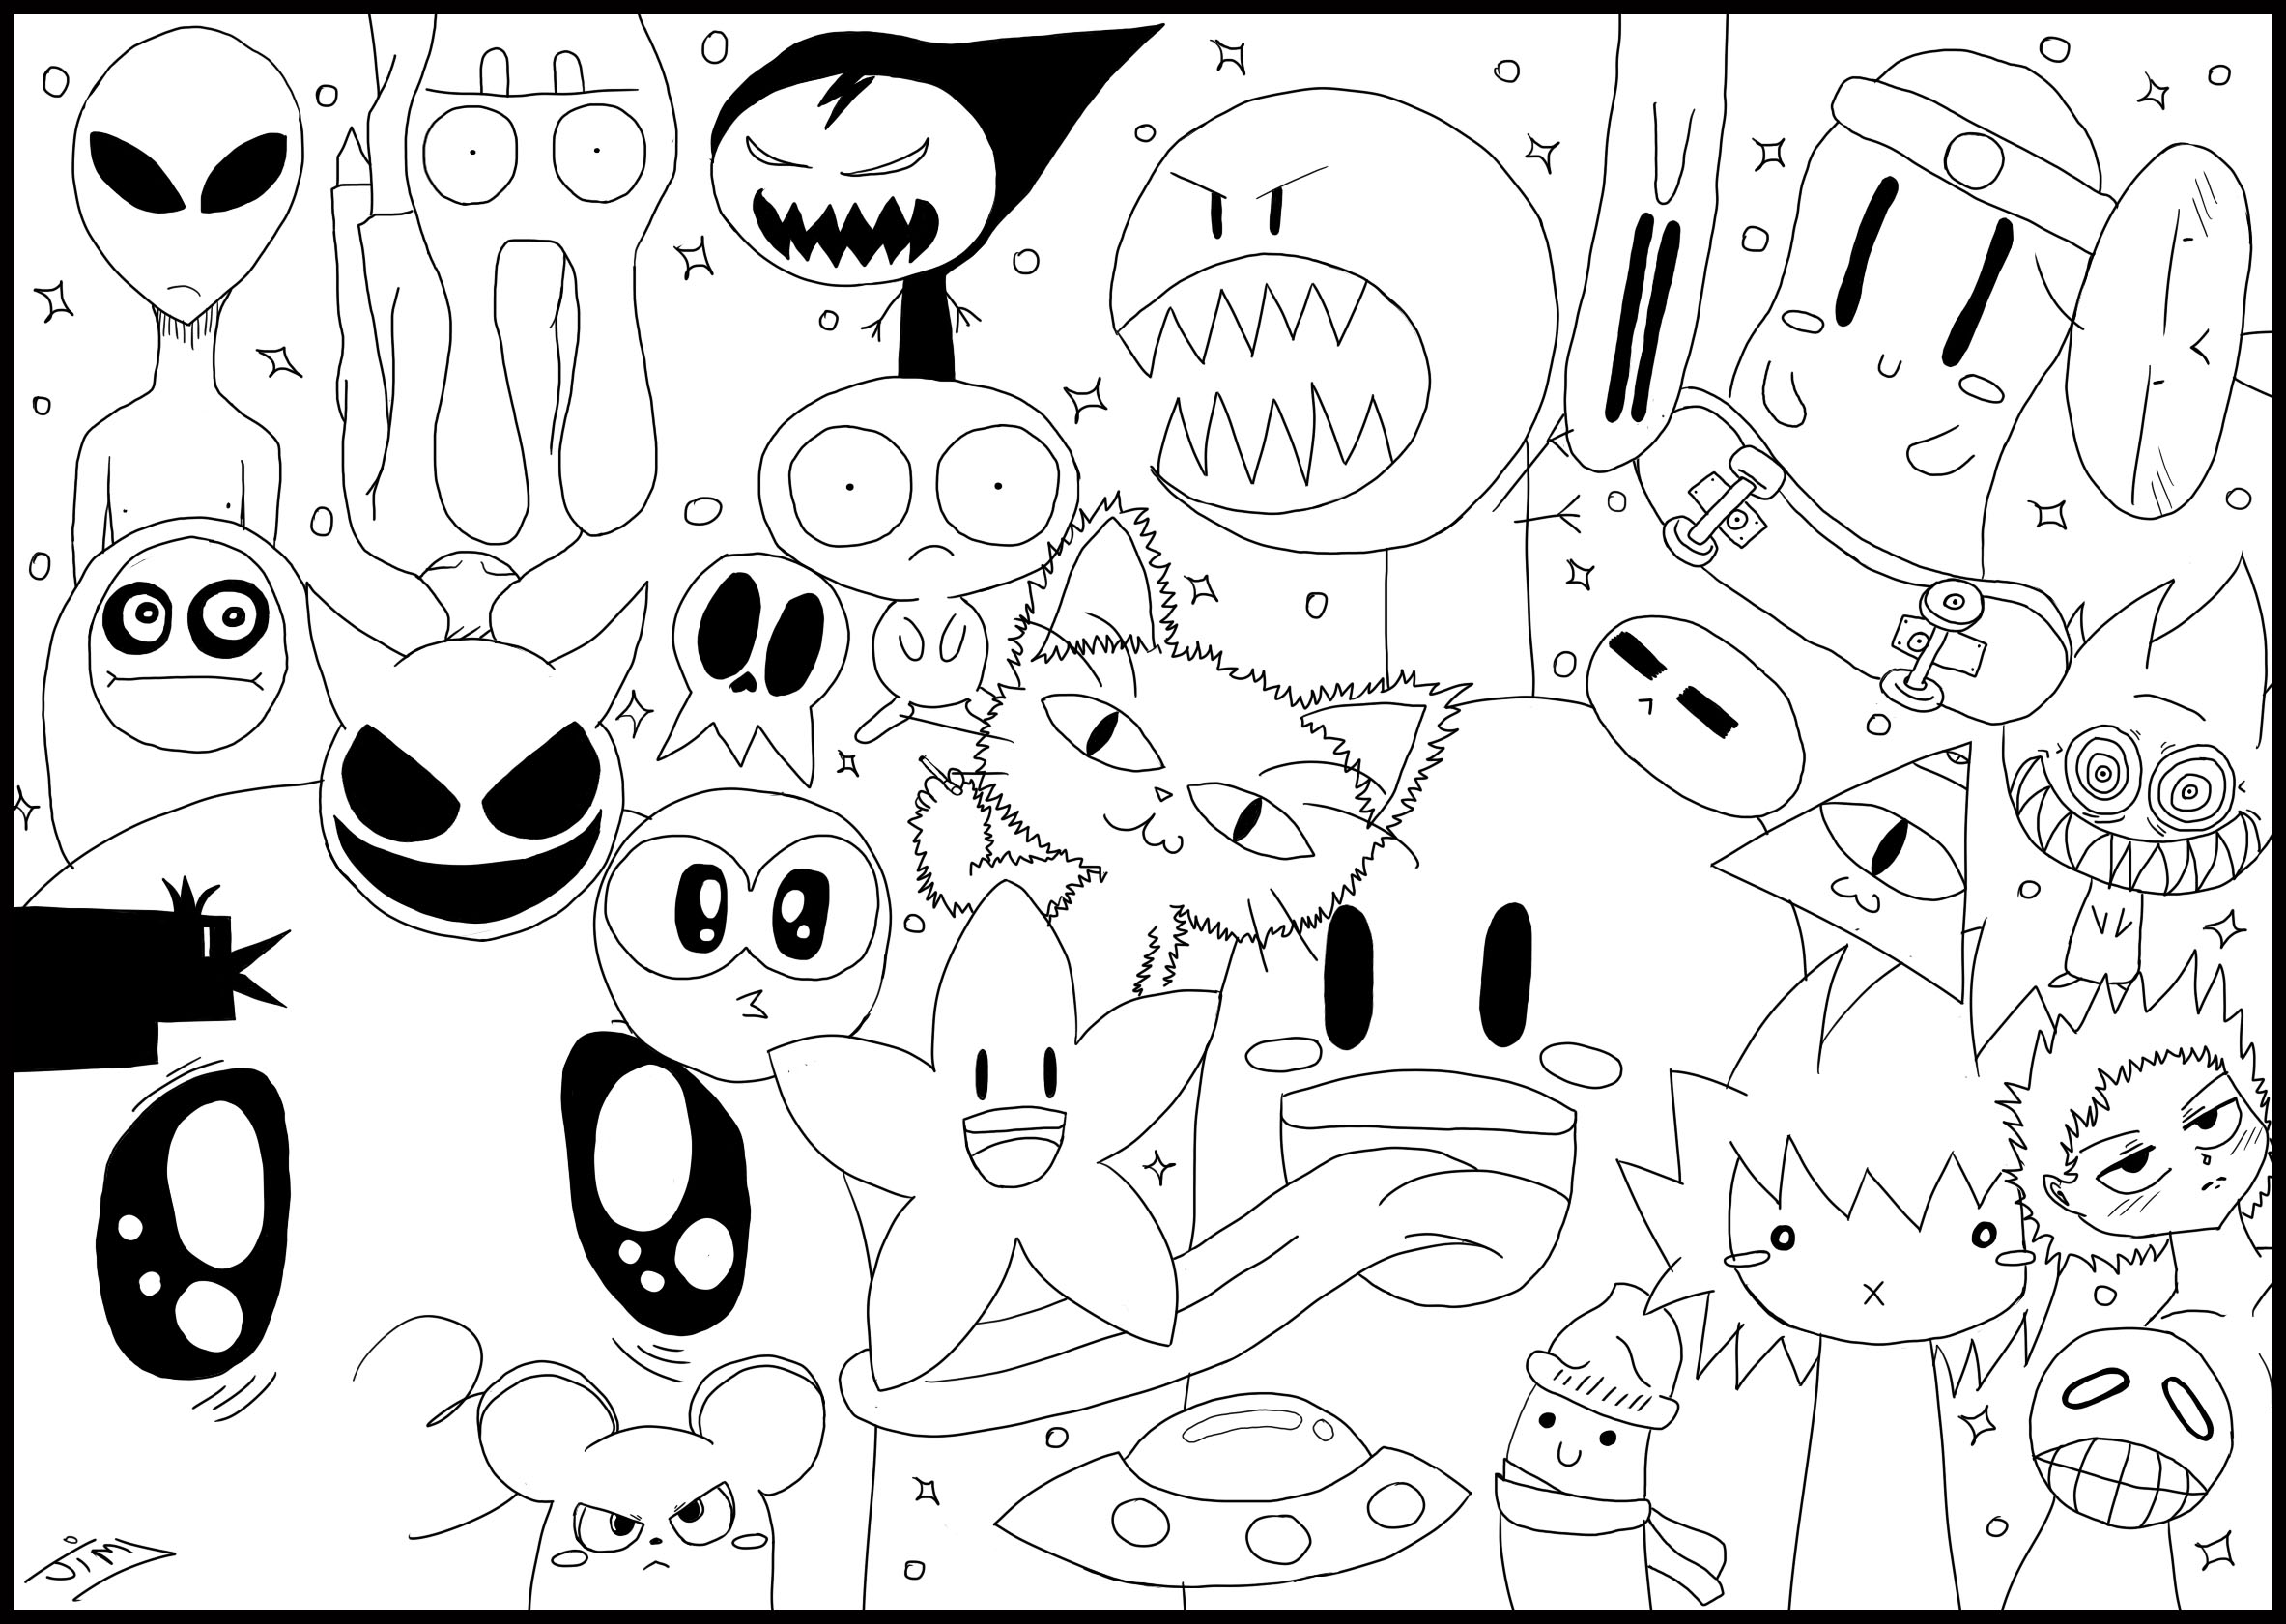 A Doodle Drawing With Funny Kawaii Monsters And Animals